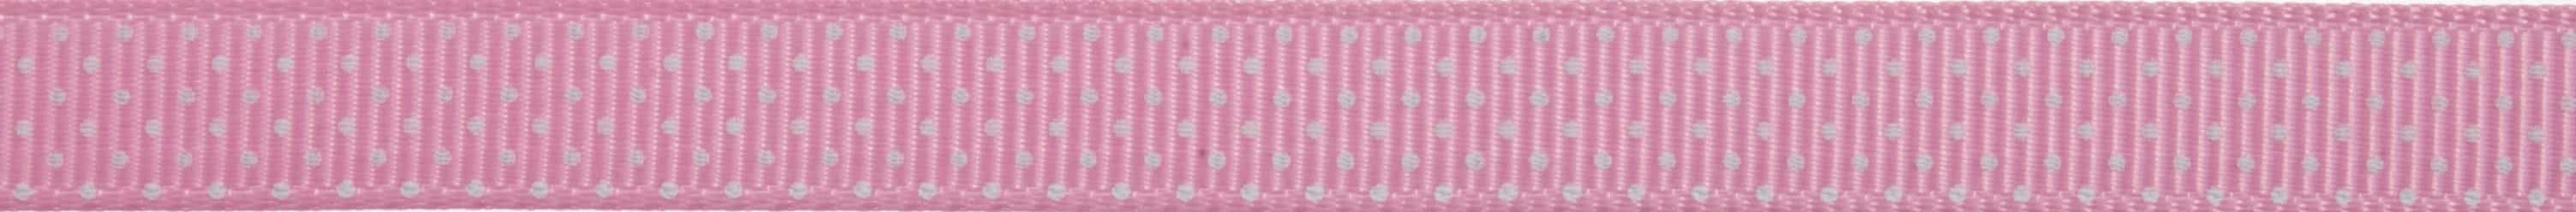 10mm Pink Pin Spots Grosgrain Ribbon 5m Reel